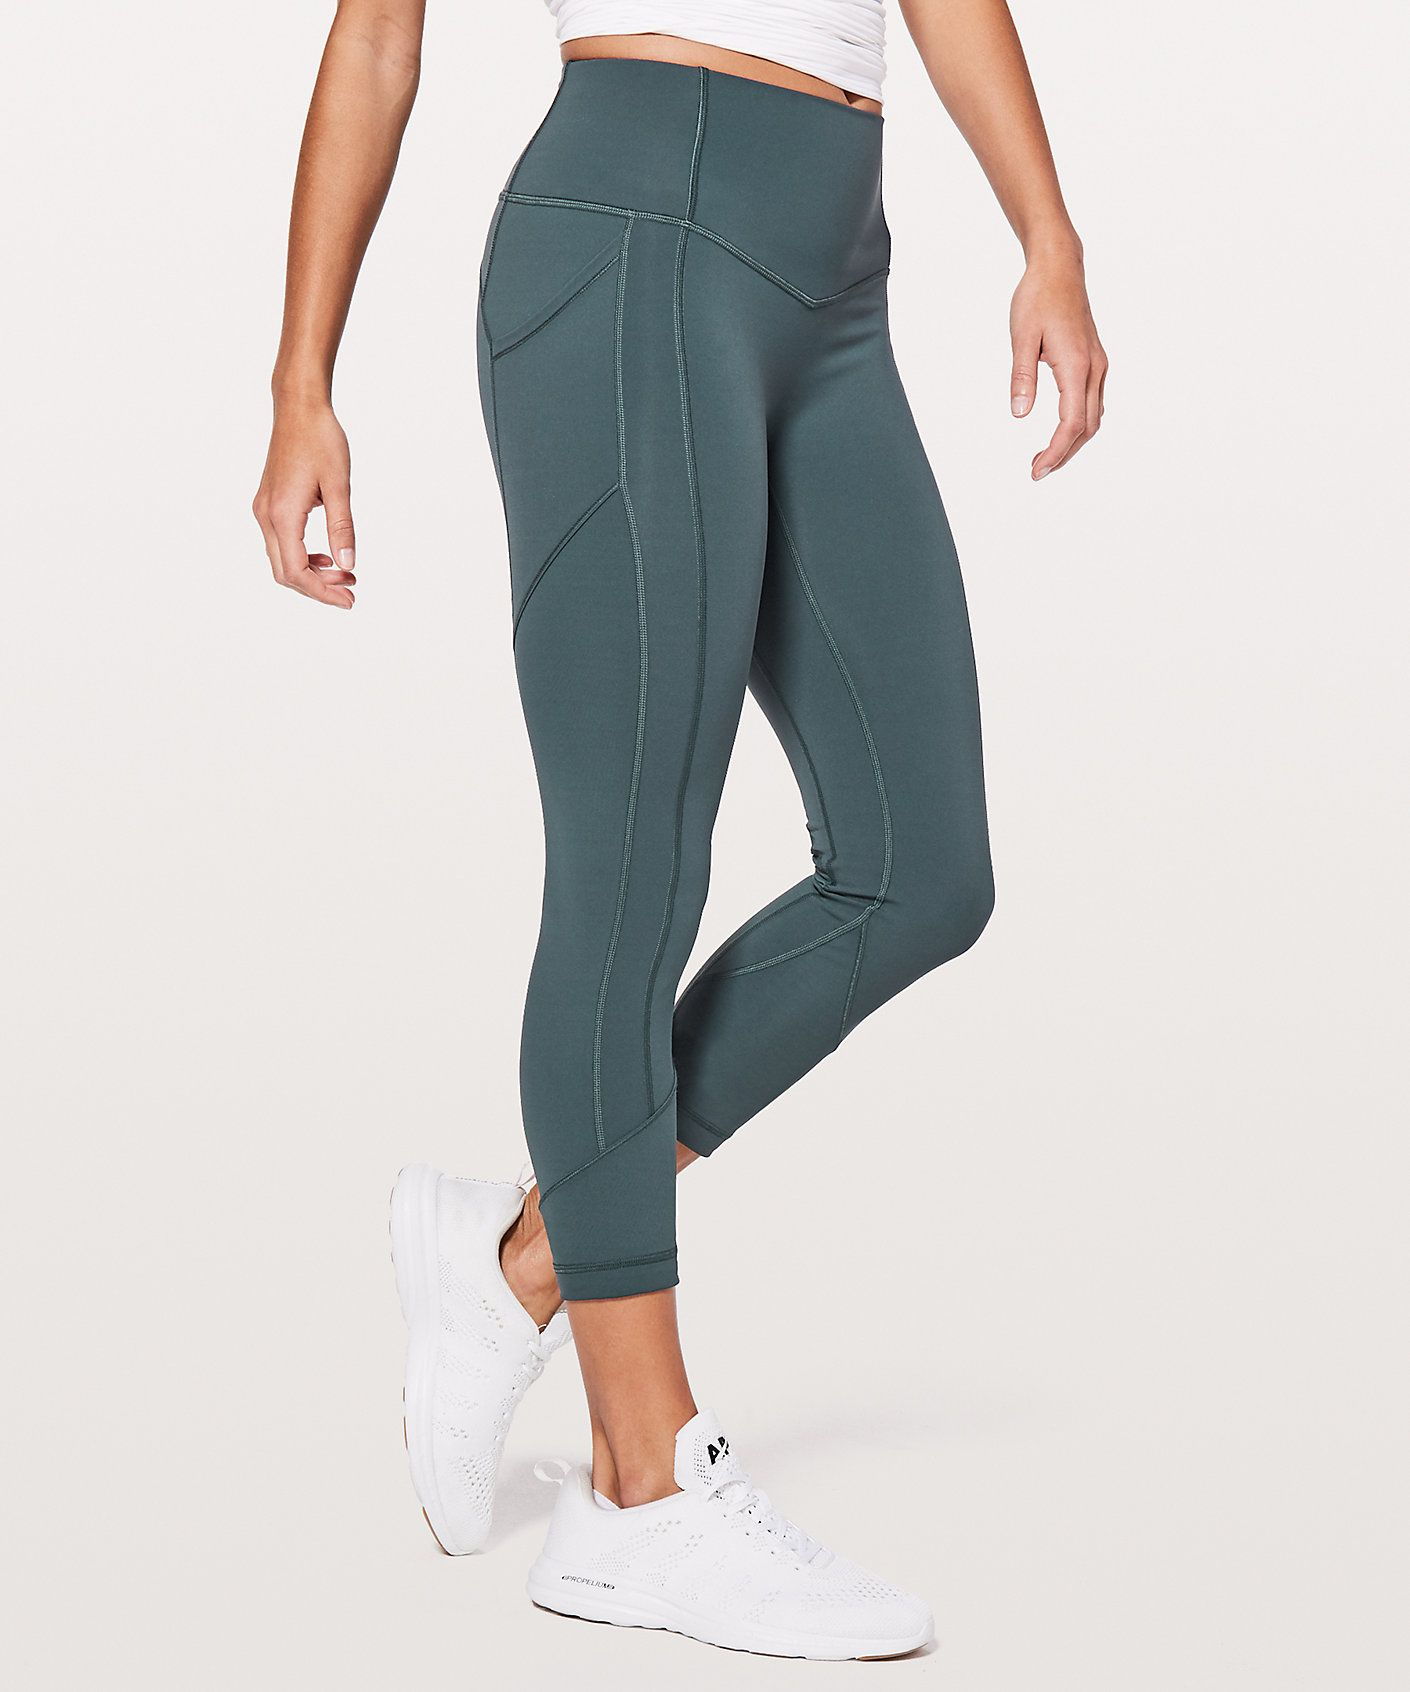 These highrise, allsport crops use zoned compression to